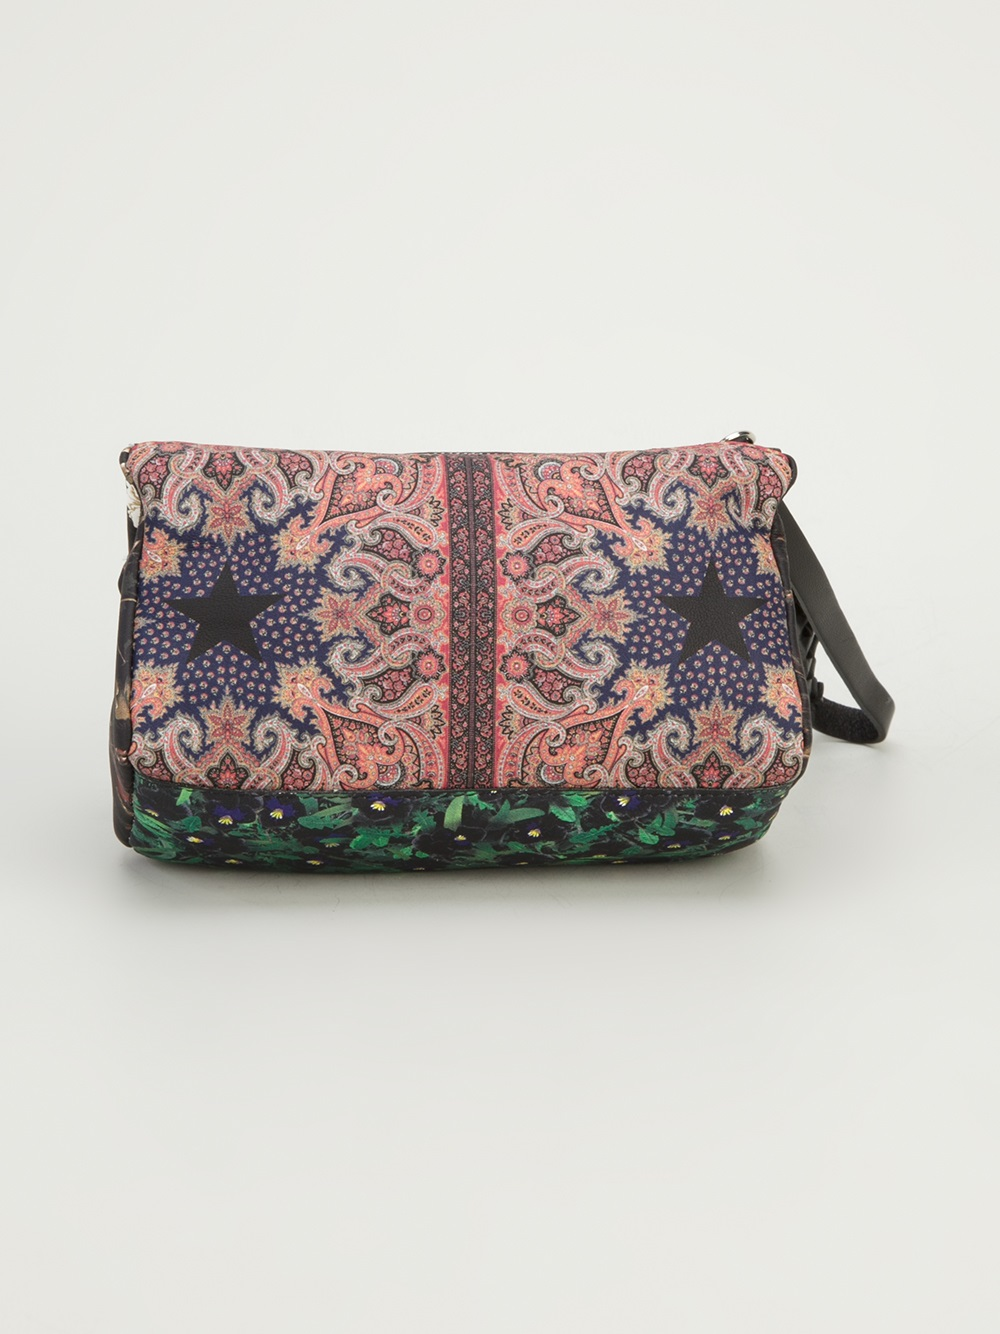 49aced06983b1 Givenchy Handbags Clutch | Stanford Center for Opportunity Policy in ...